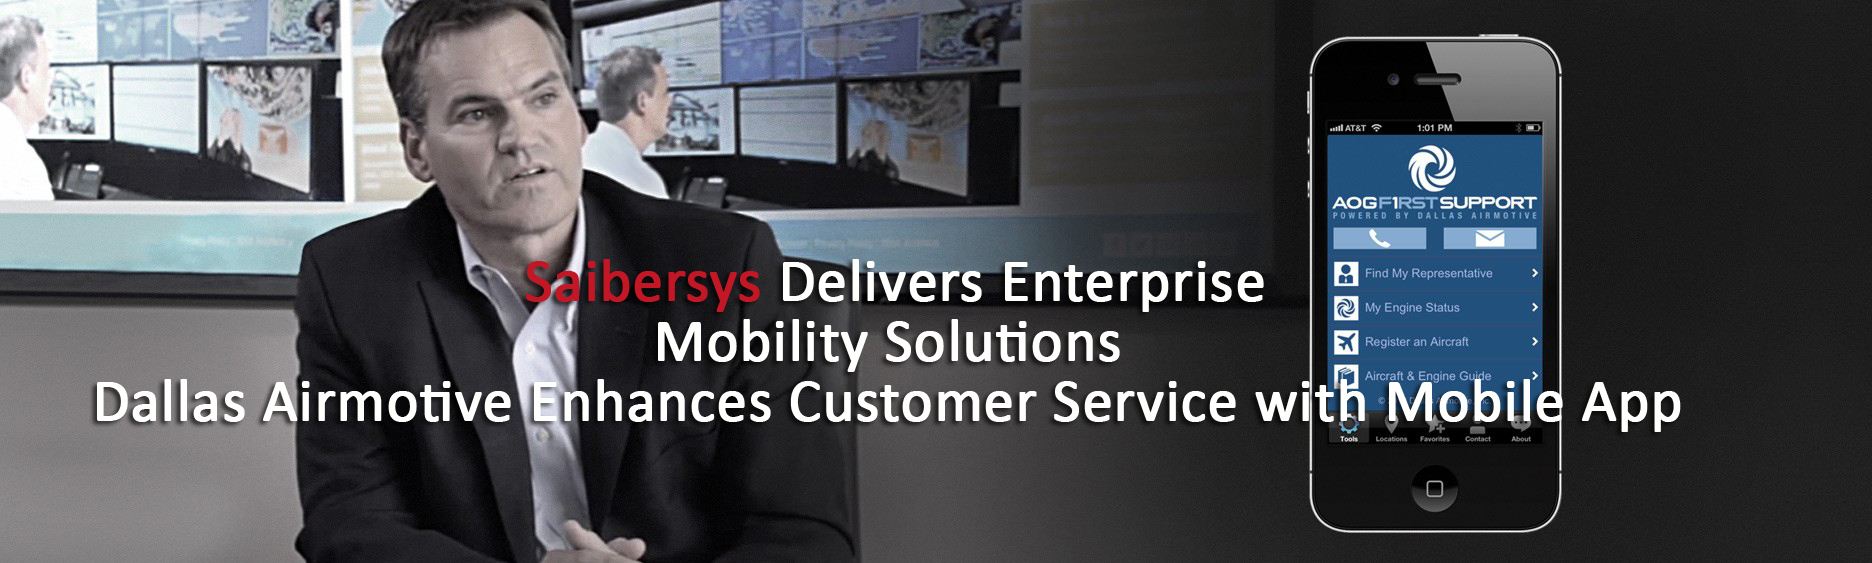 Welcome to Saibersys Global IT Services Company